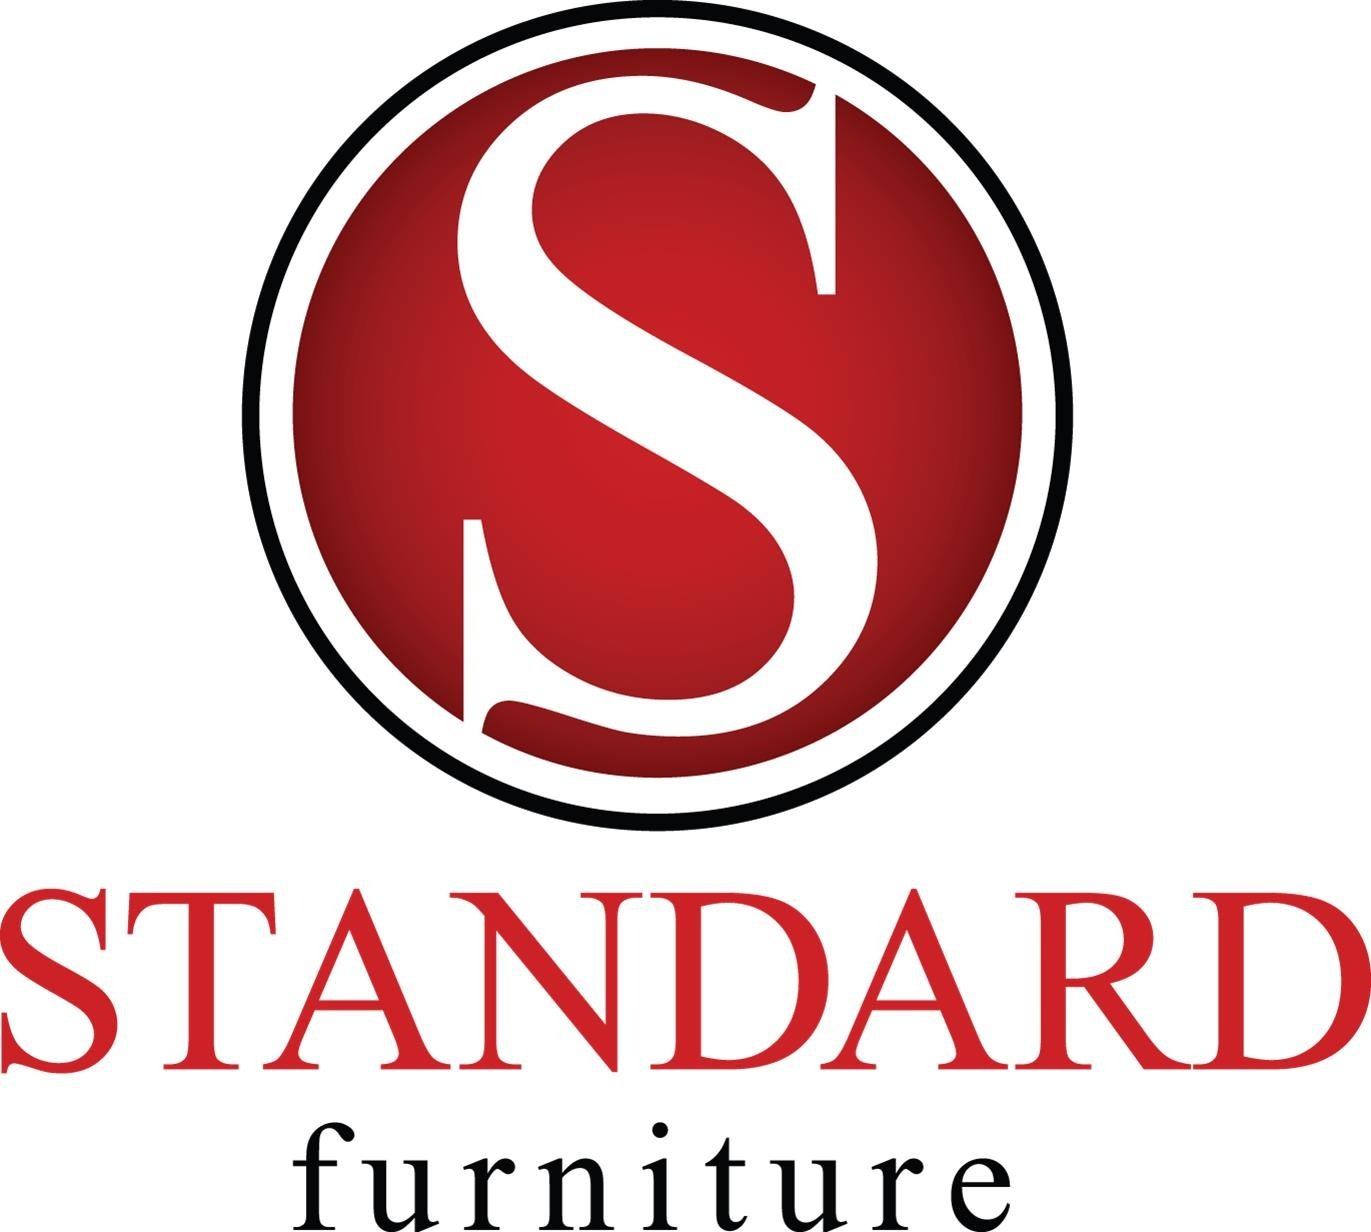 https://0201.nccdn.net/1_2/000/000/107/96d/Standard-Furniture-1371x1232.jpg